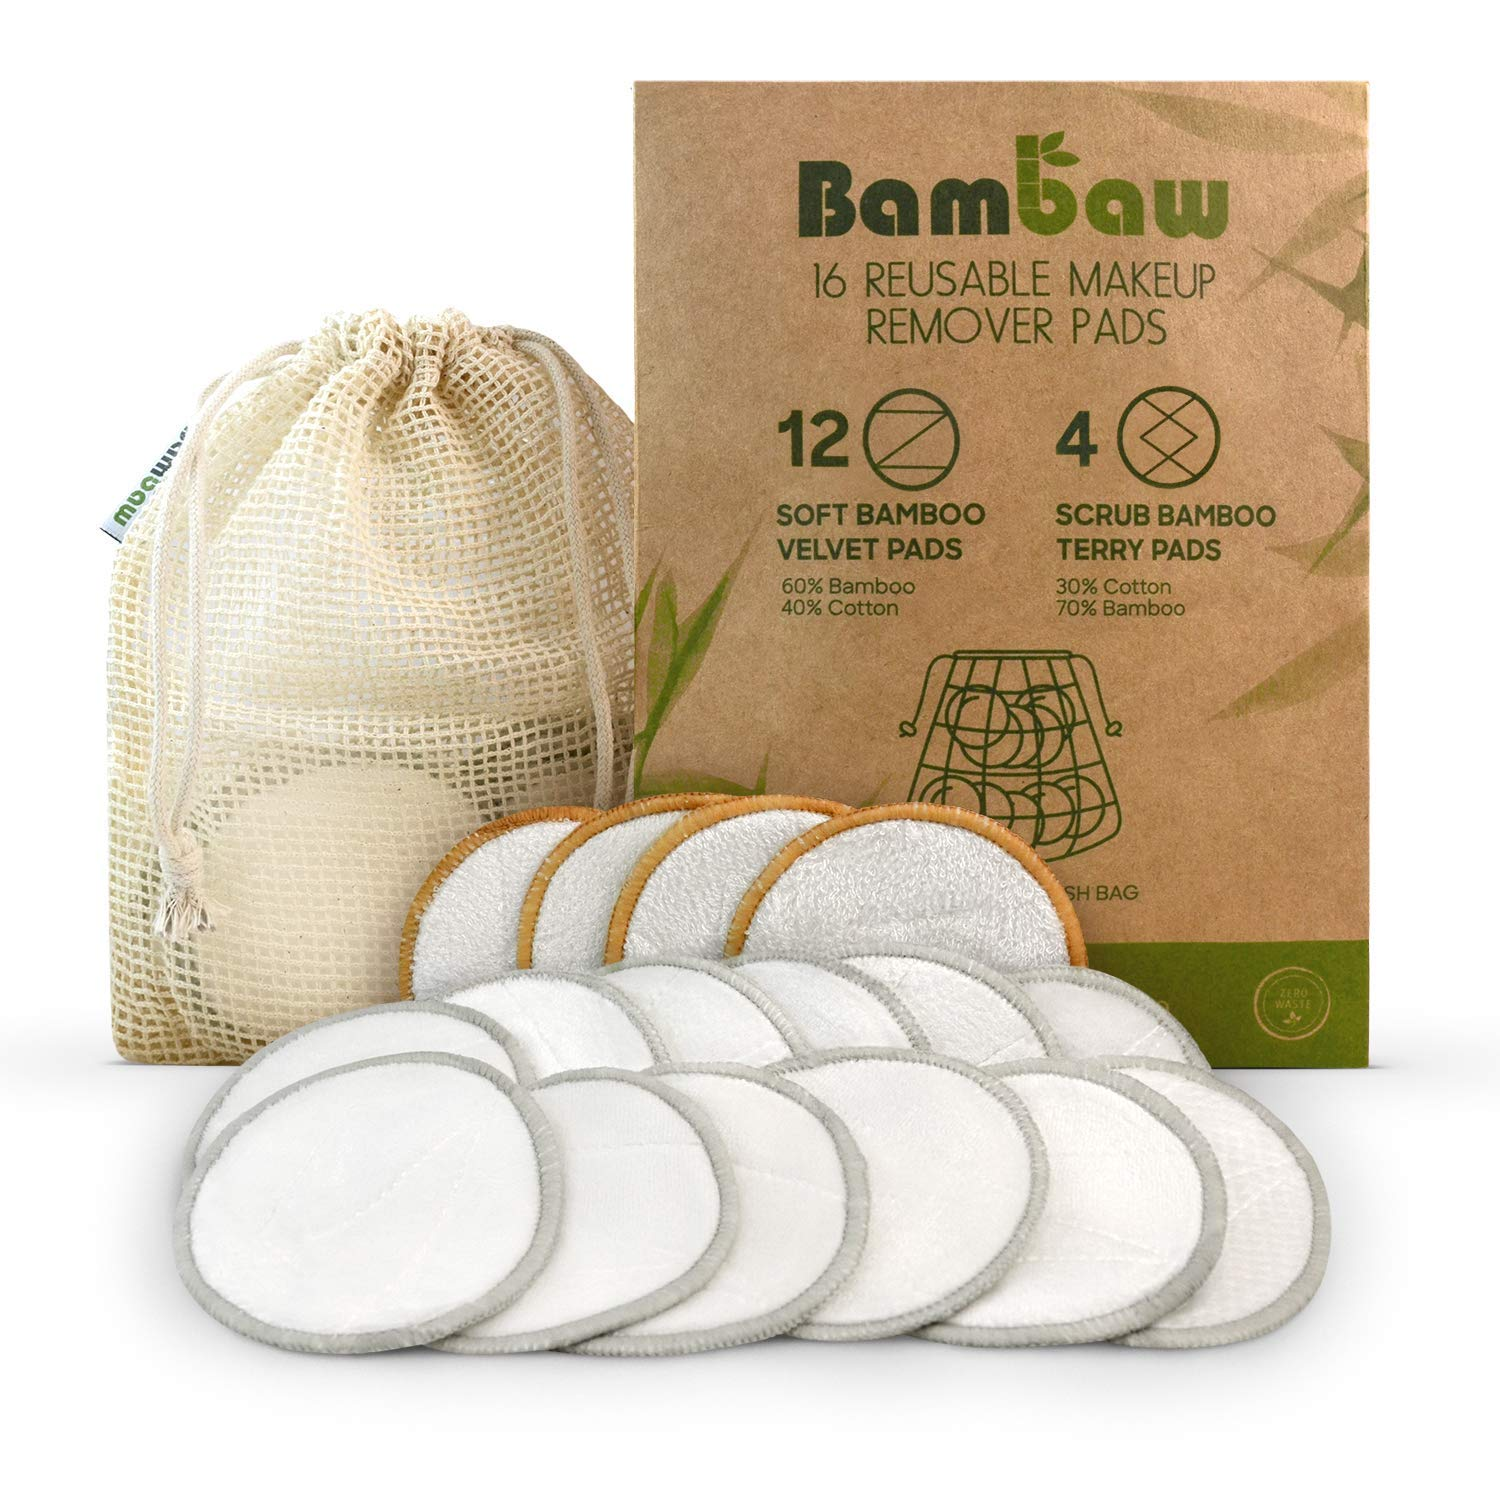 Reusable Make Up Remover Pads | 16 Bamboo Removal Pads with Laundry Bag | Washable and Eco-Friendly | For All Skin Types | Face Cleaner and Eye Make Up Remover Pads| Zero Waste Make Up Pads | Bambaw by Bambaw